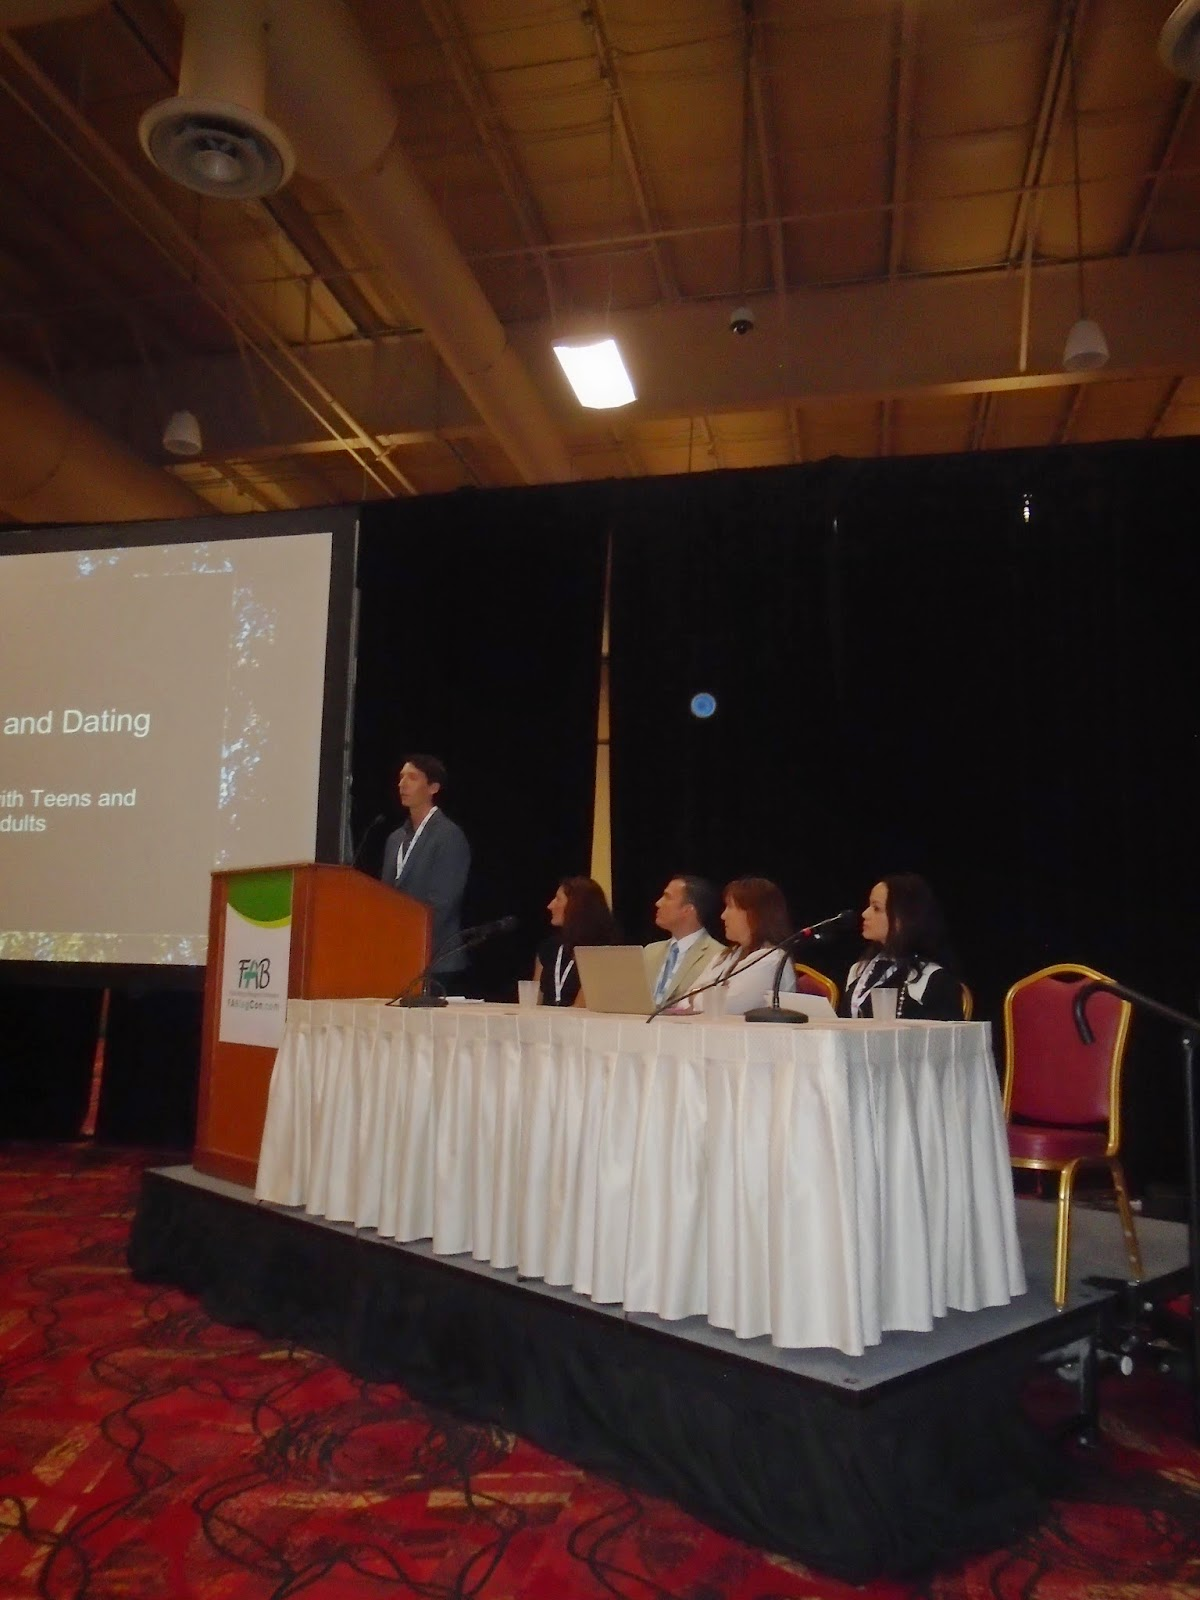 Panel of four speakers for FABlogCon 2014 conference